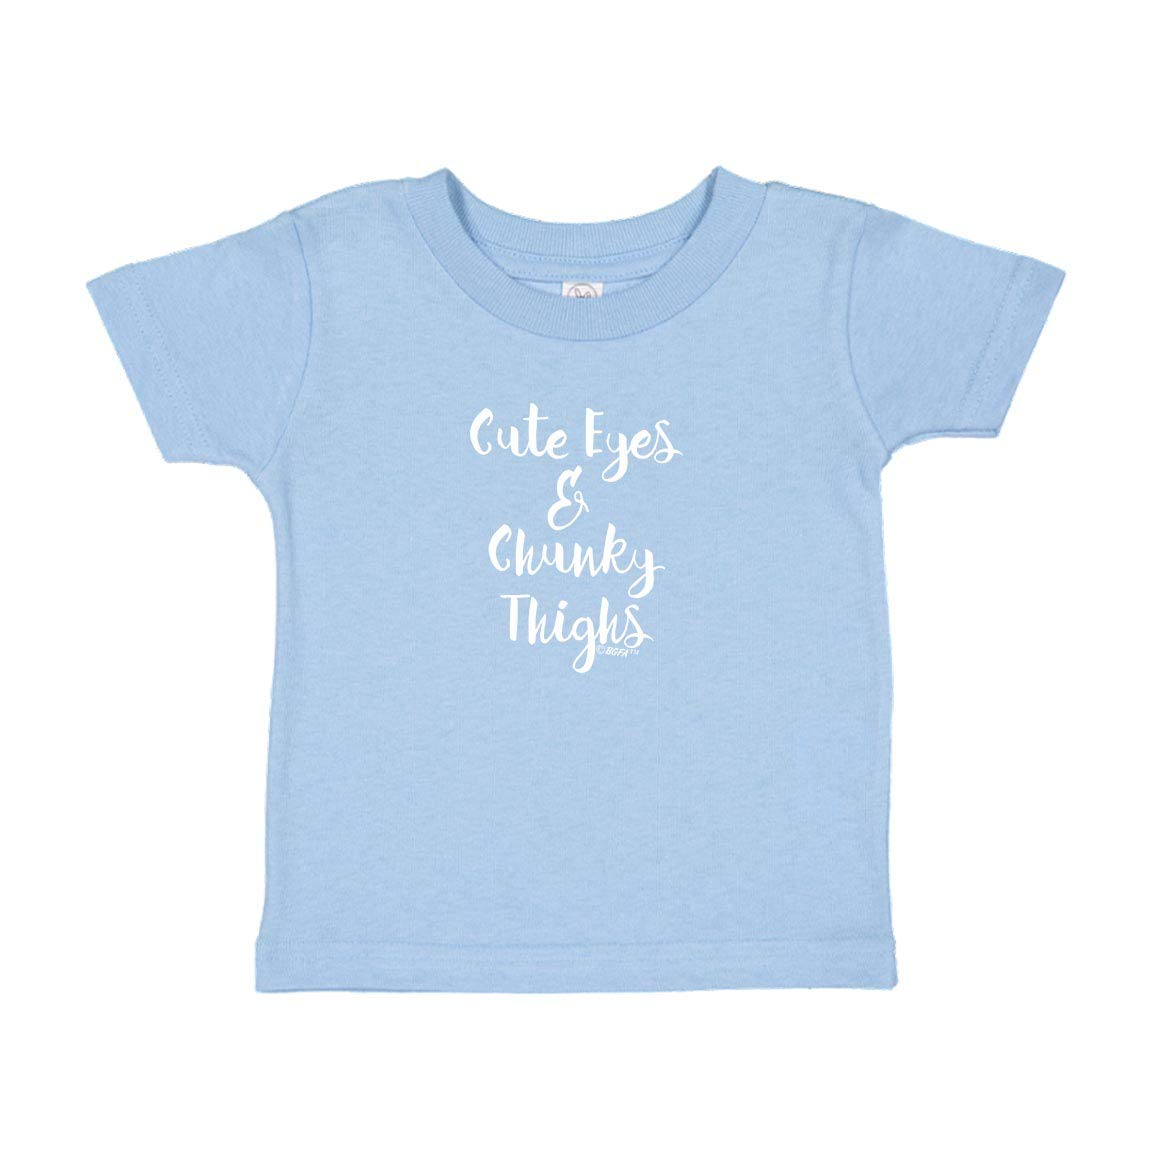 Baby Gifts For All Funny Quote Gift Cute Eyes Chunky Thighs Toddler Juvy T-Shirt